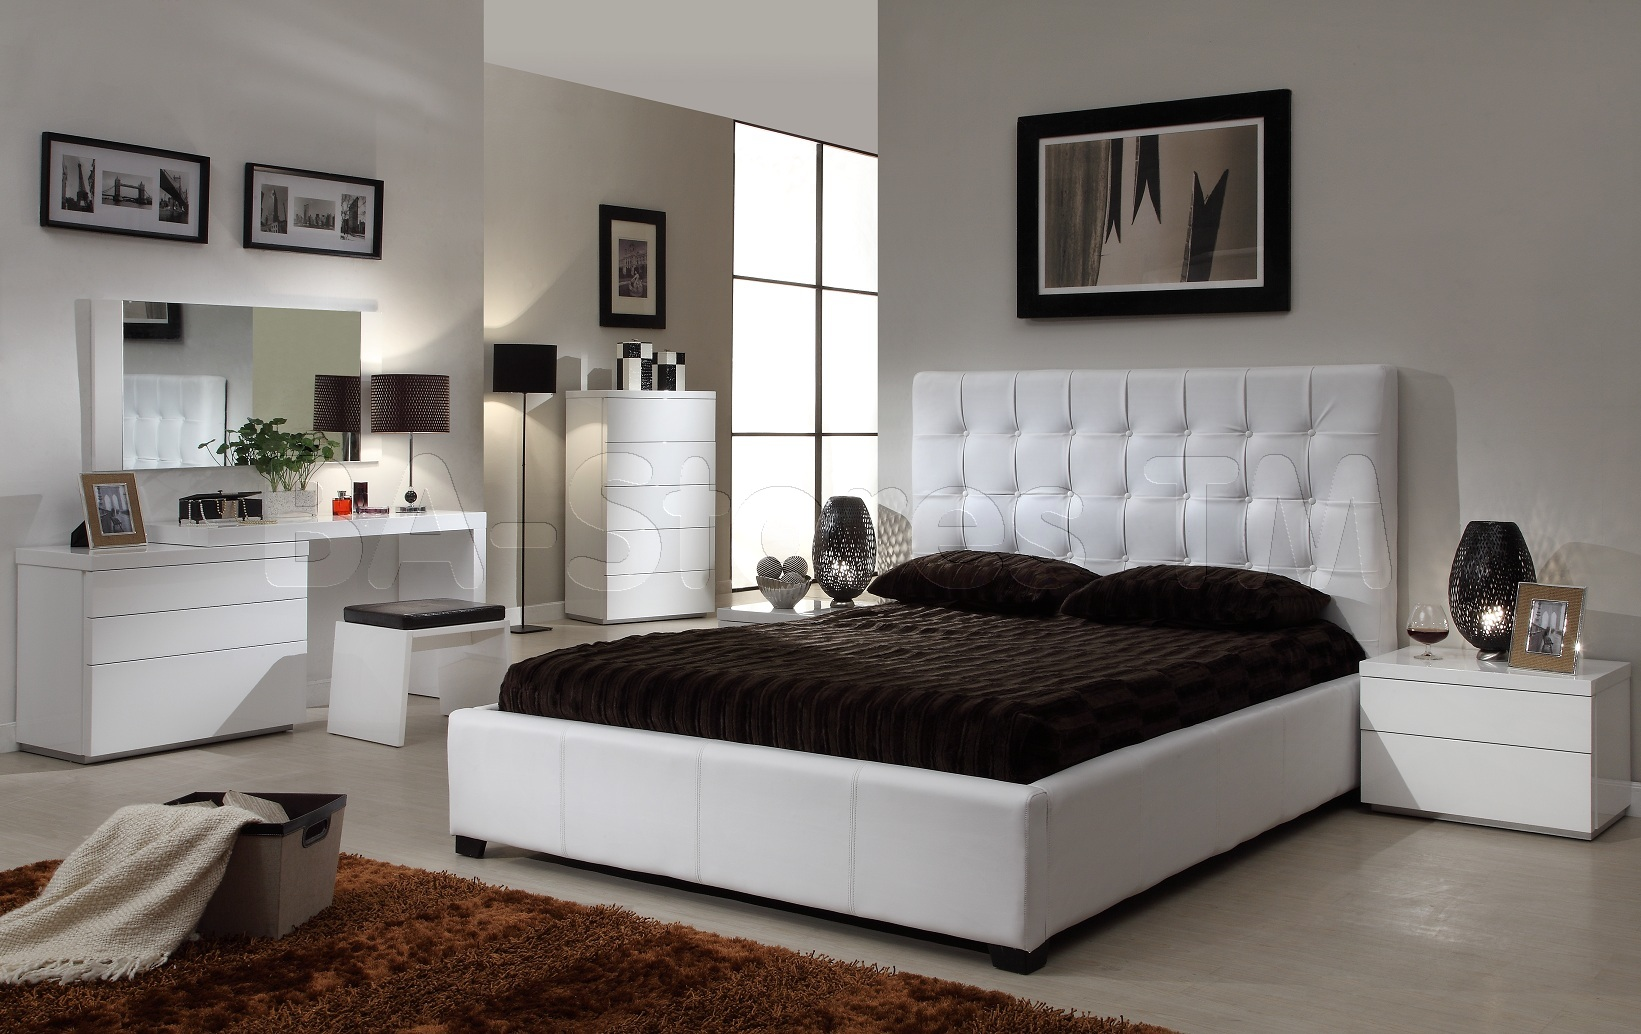 Luxury Queen Size Bed Dimensions Ideas (View 6 of 10)